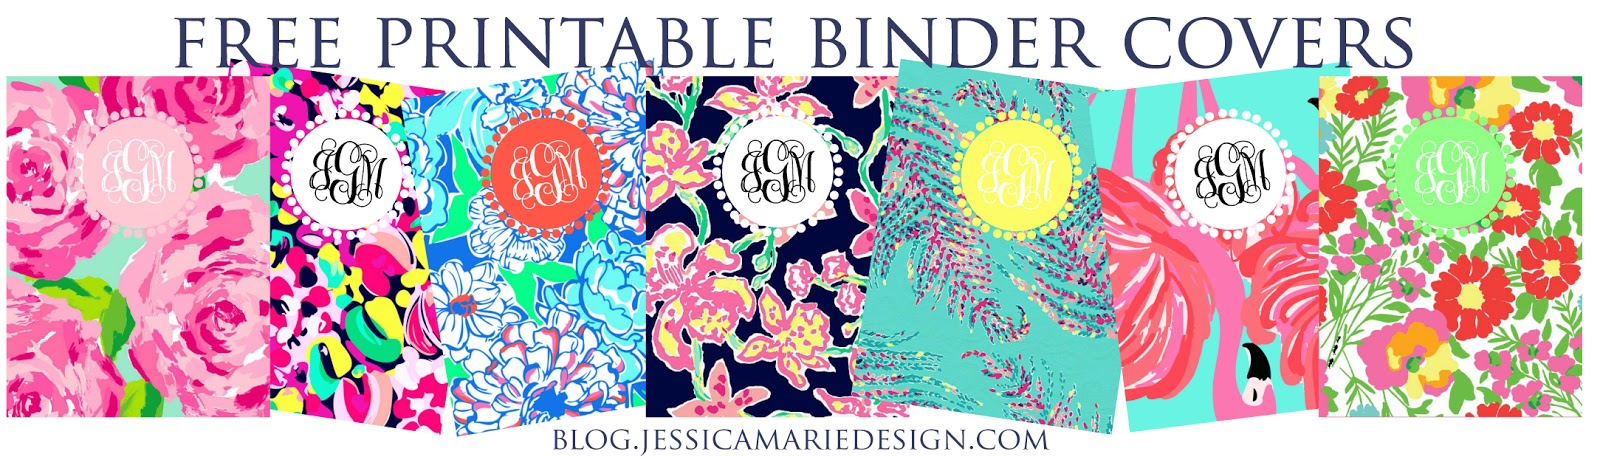 Jessica Marie Design Blog Preppy Printable Binder Covers